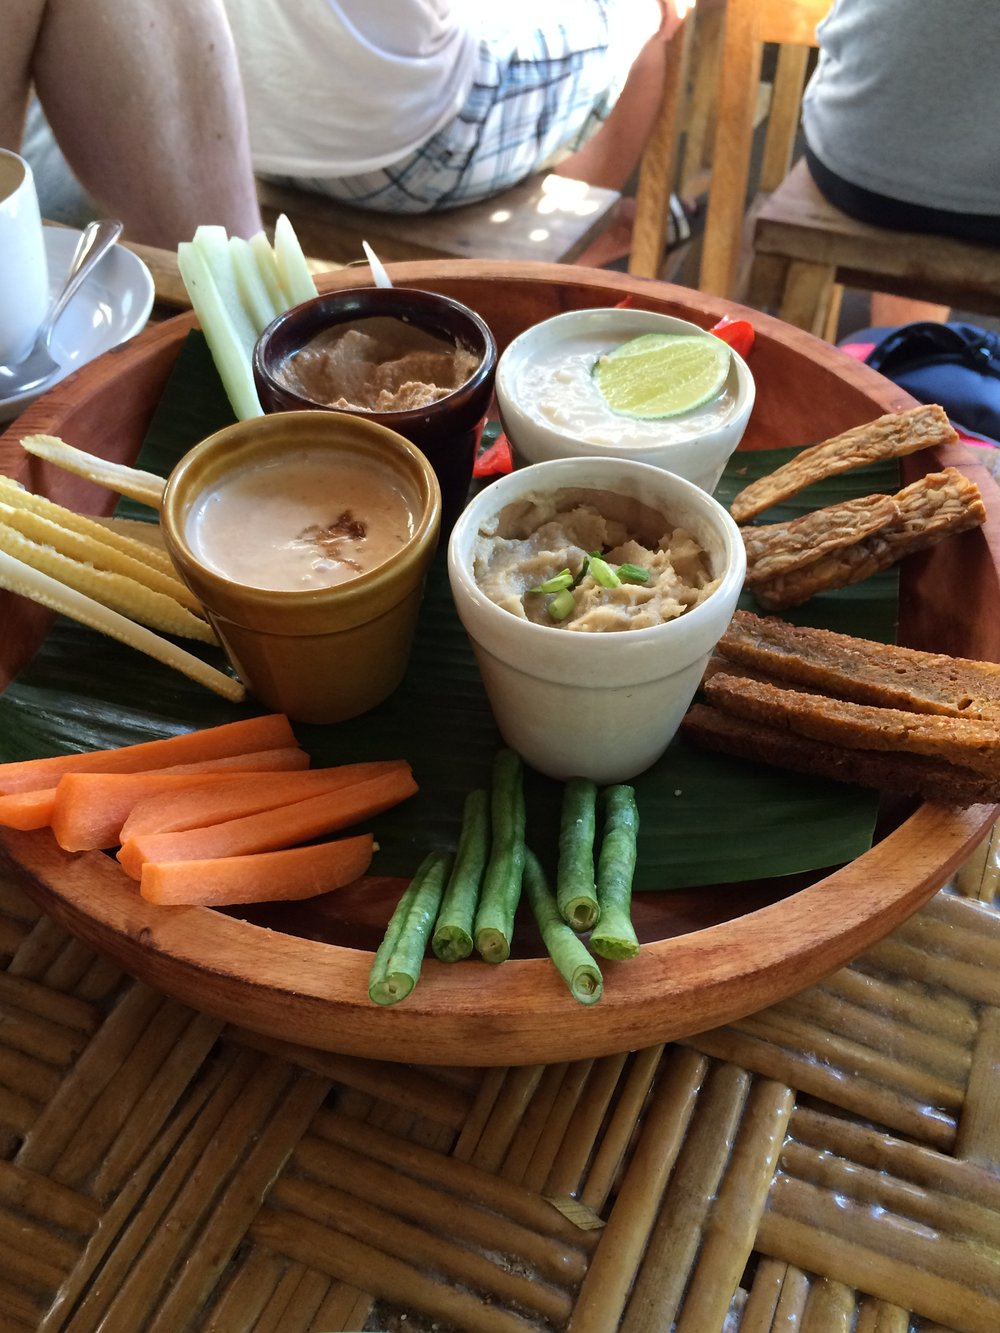 7 Veggie Dip - vegetables, tempeh and breadsticks with red curry, guacamole, white bean hummus and peanut sauces.